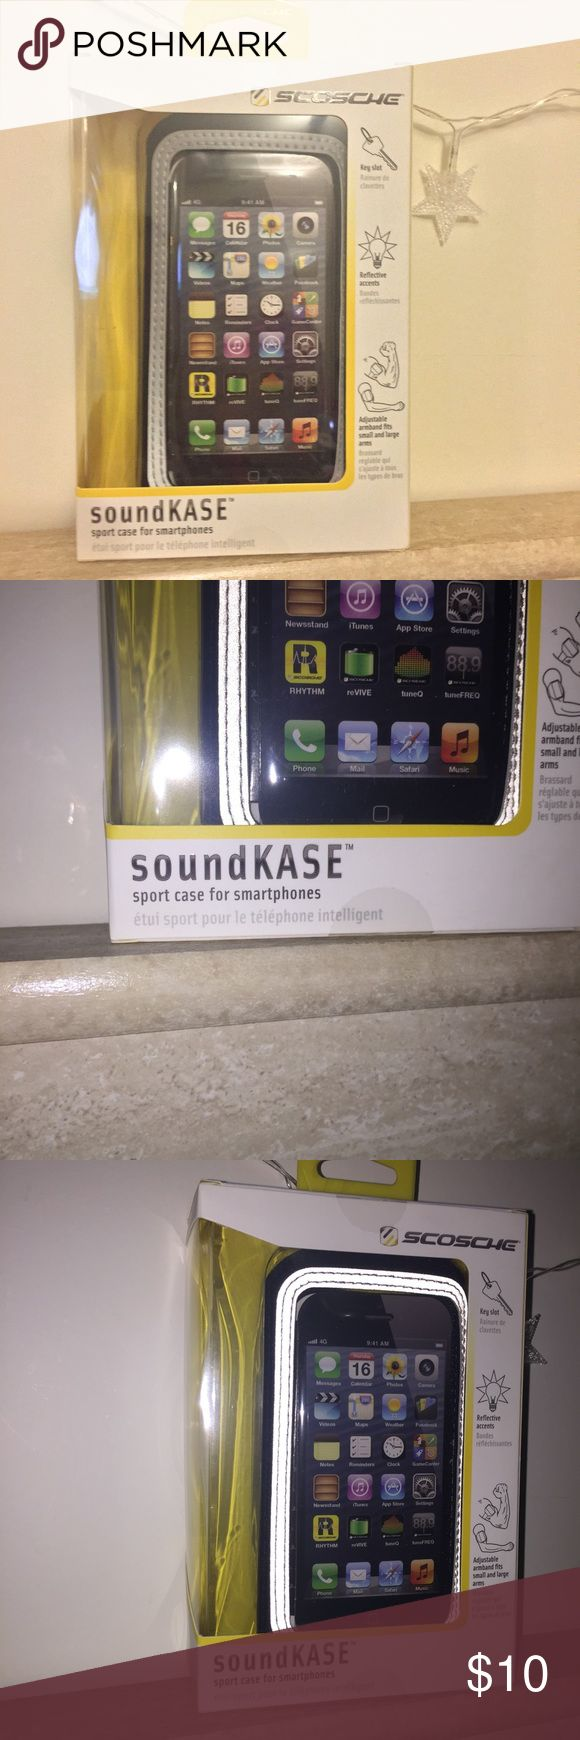 soundKase armband phone case New never used, still in box. Works with iPhone 6. Also has a key slot and adjustable. Accessories Phone Cases